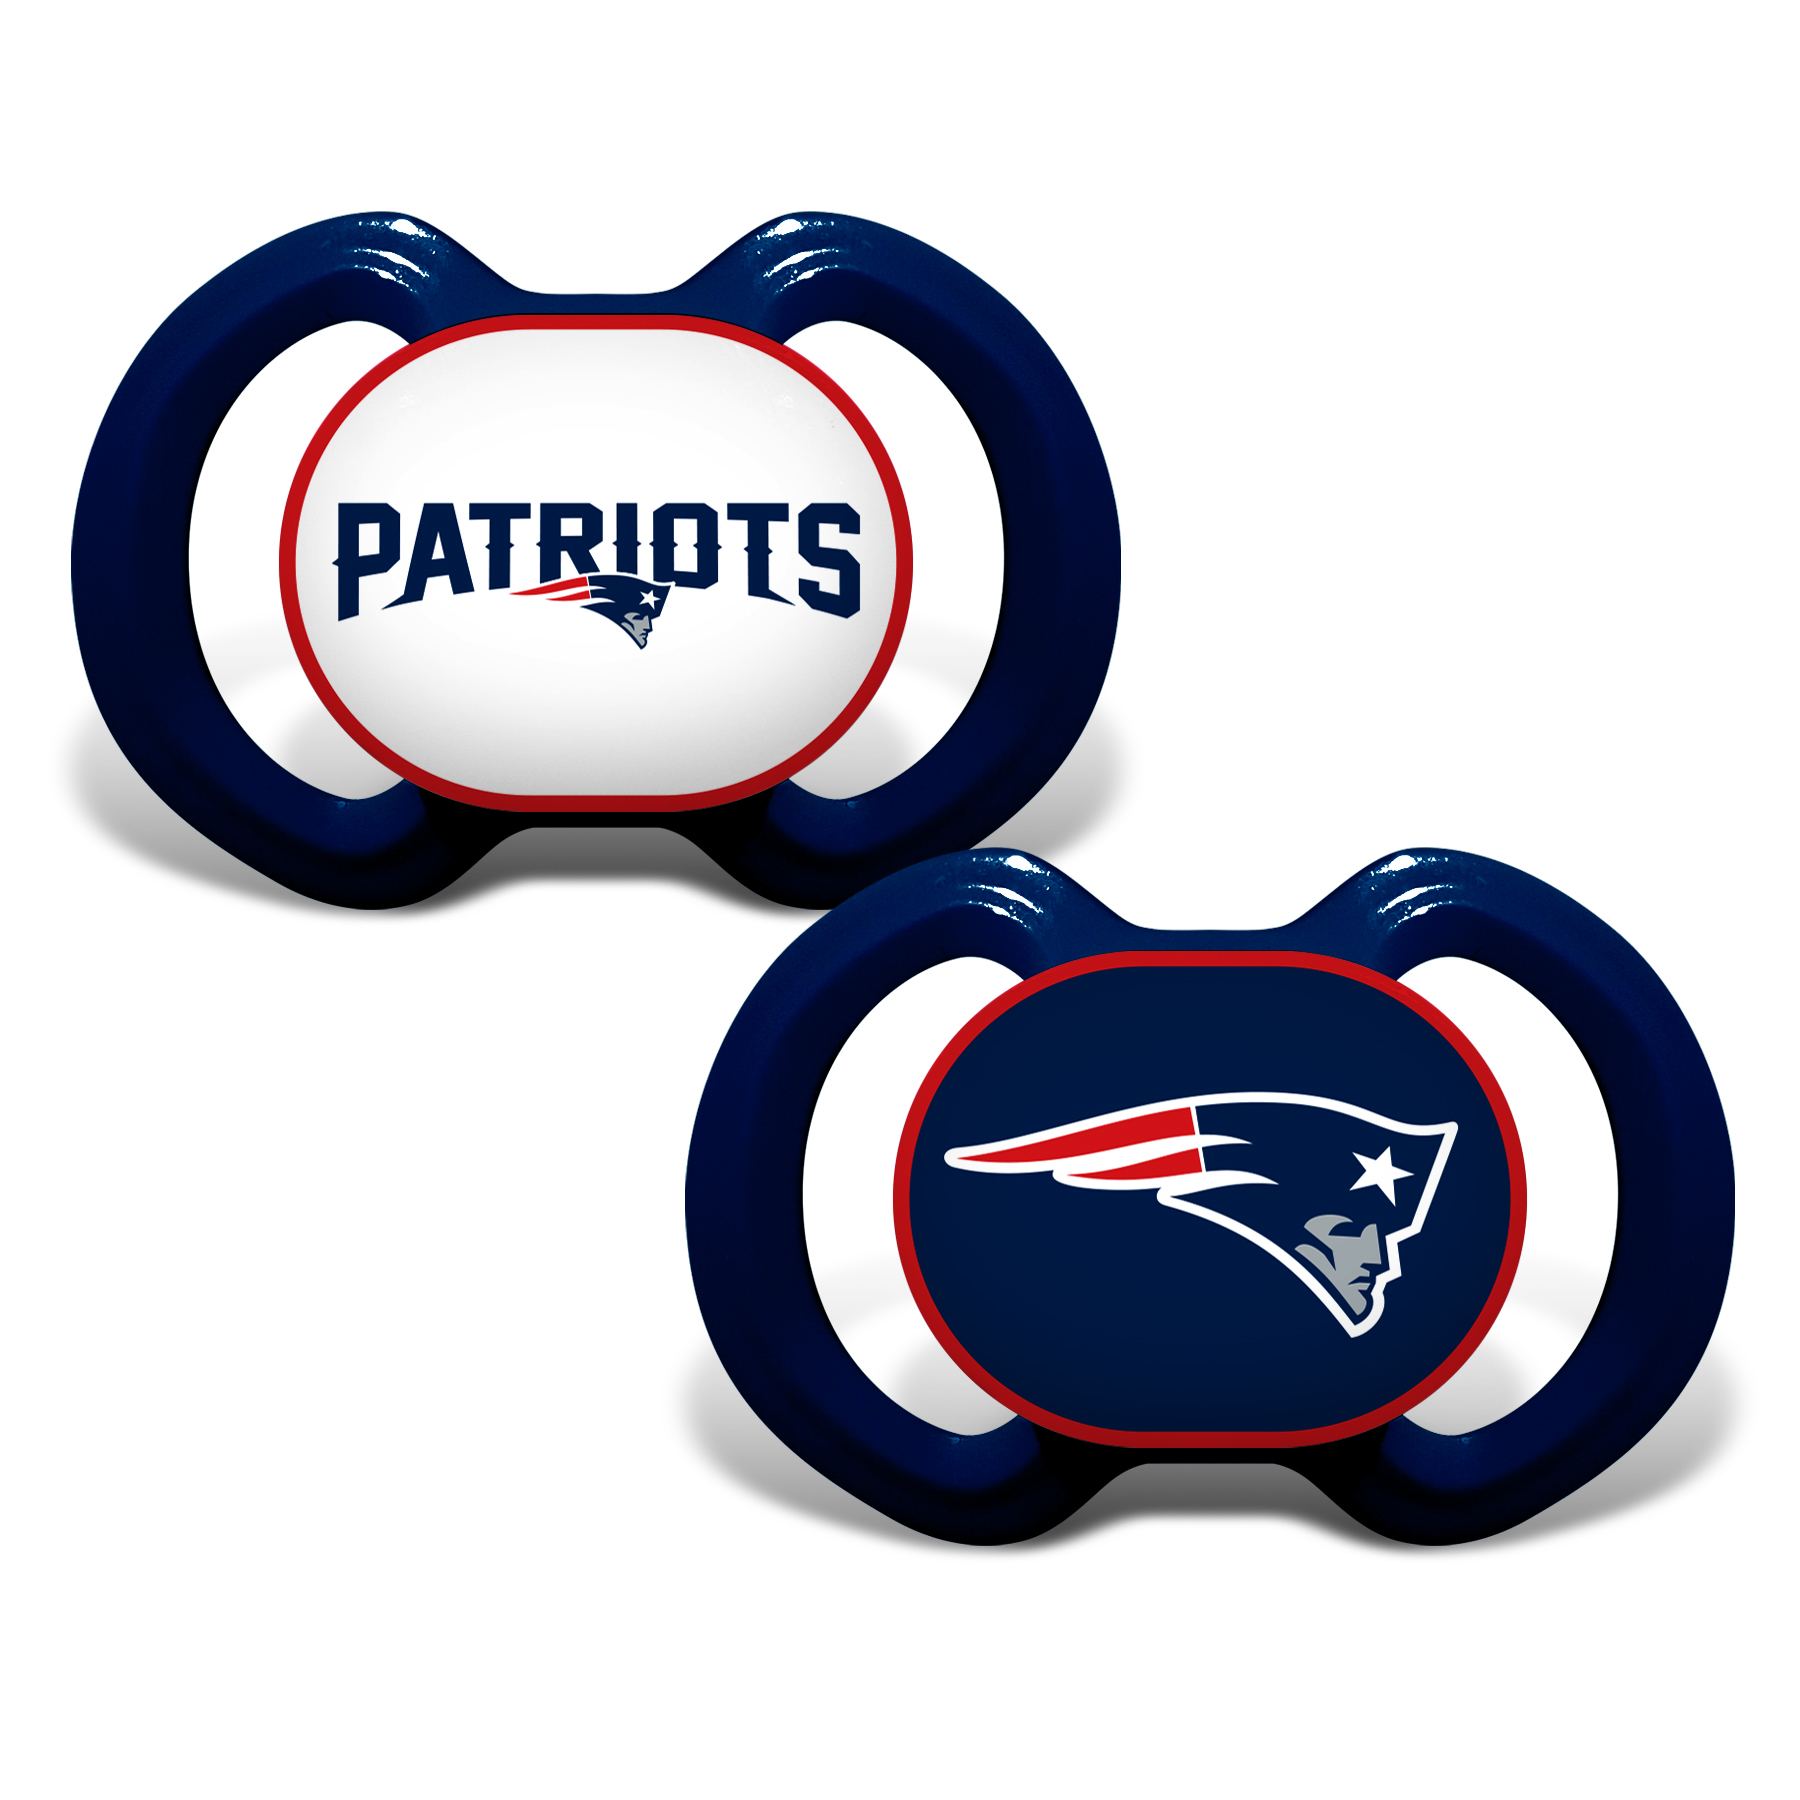 Football Nfl Football New England Patriots Baby Fan Gear - 1740702232 - New England Patriots Pacifier-2 Pack 1740702232